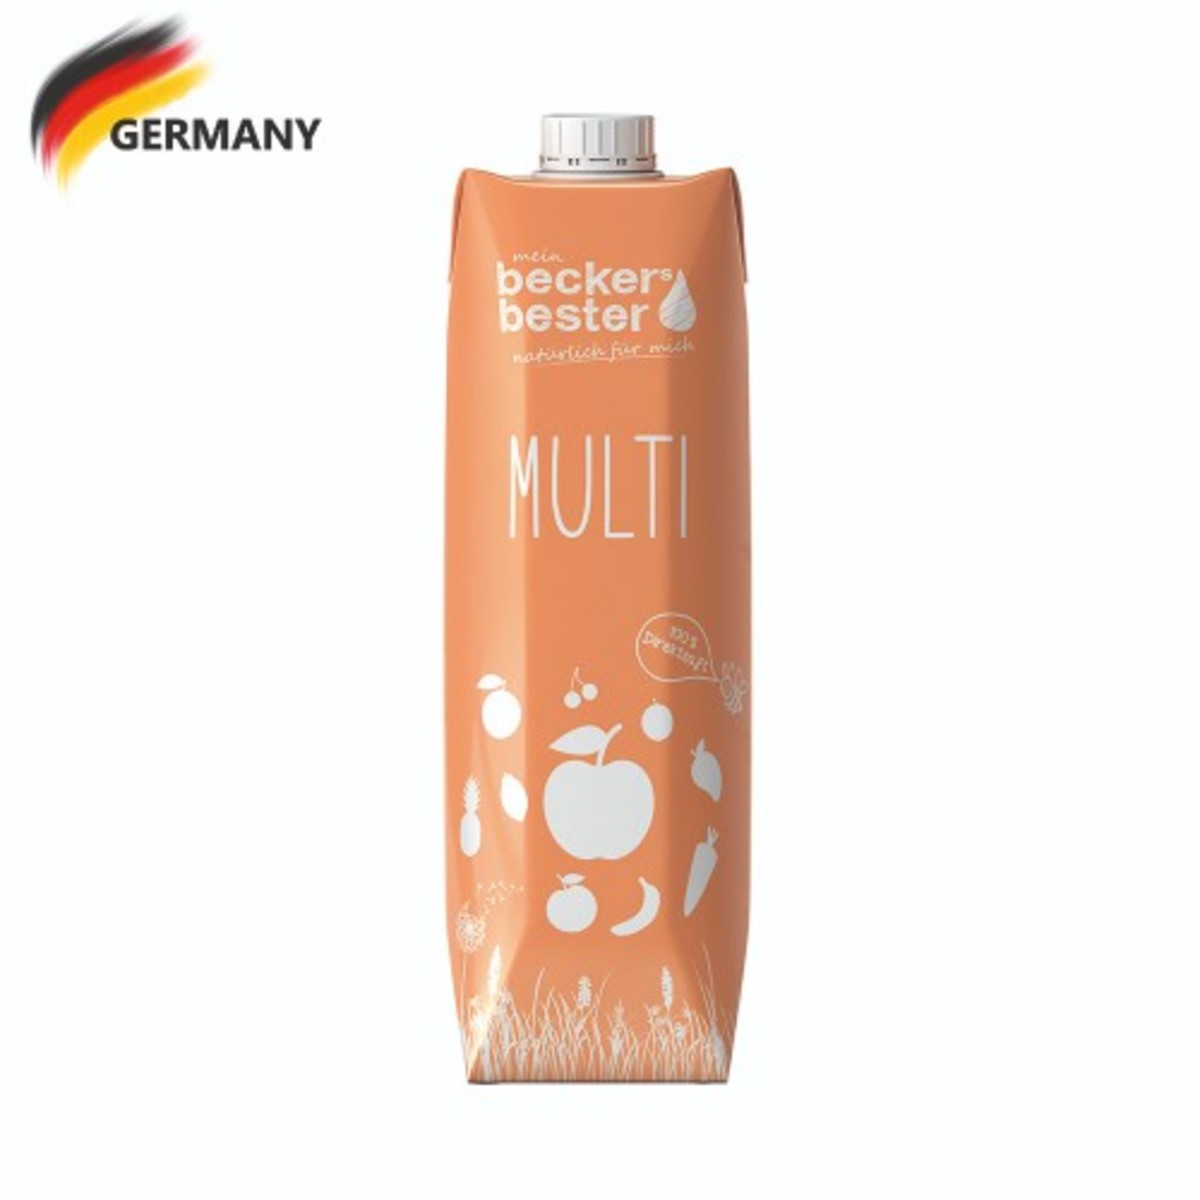 100% Direct Pressed Multi Juice (Not-From-Concentrate) 1L